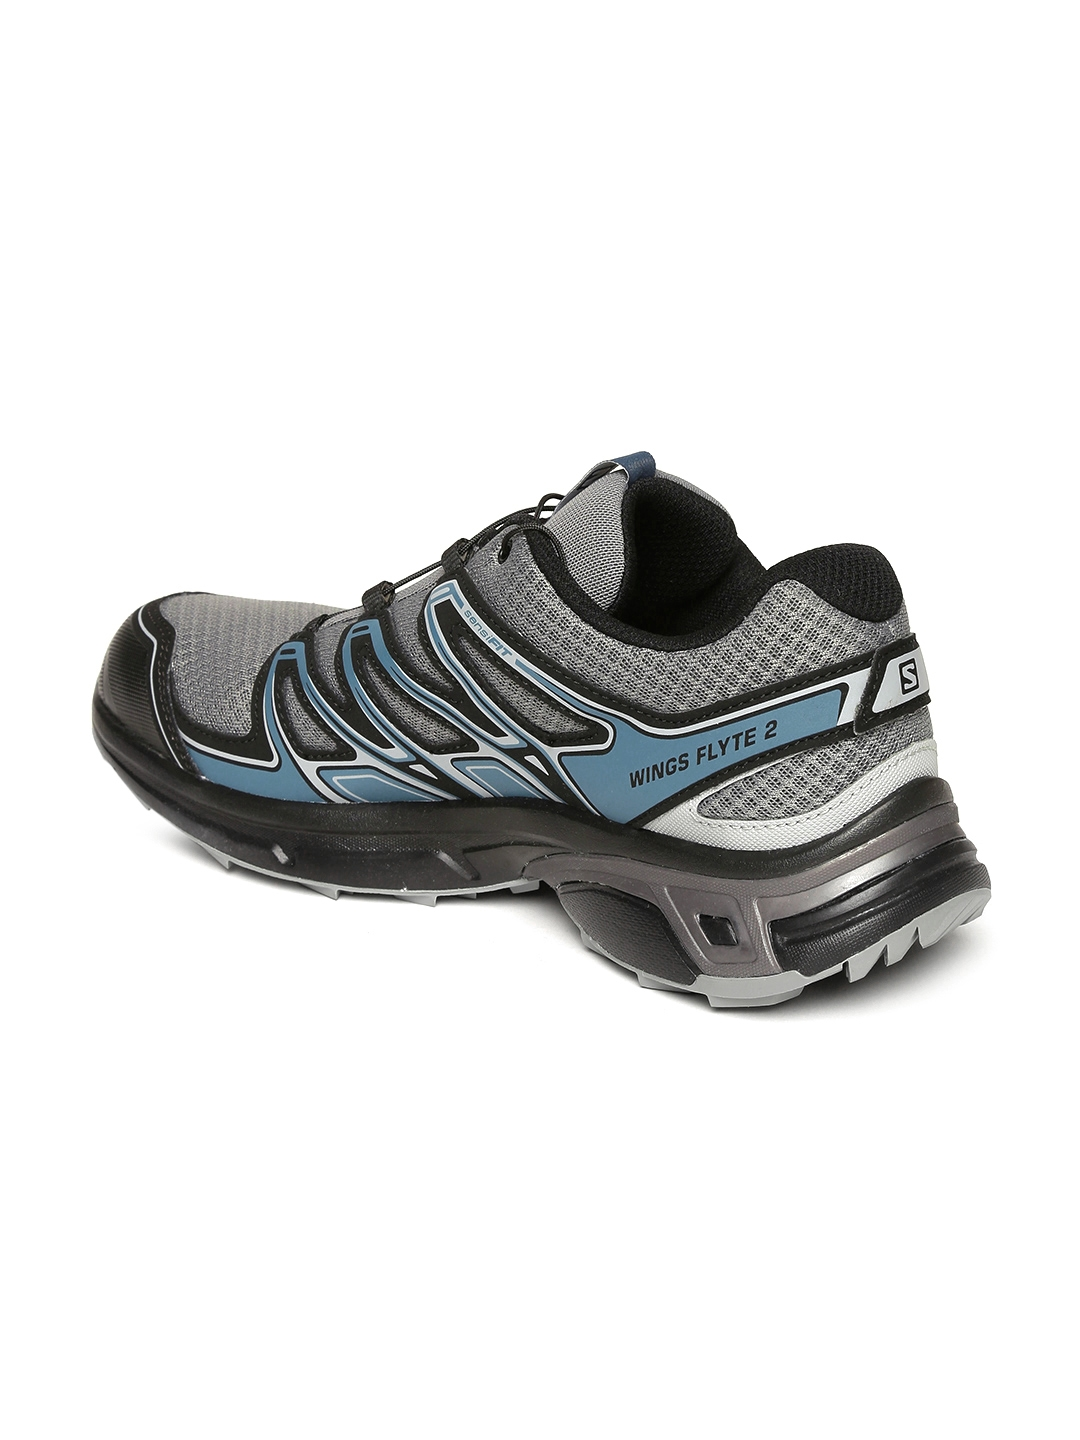 fa7ff7c2a038 Sport Salomon Wings Flyte 2 Mens Running Shoes Grey